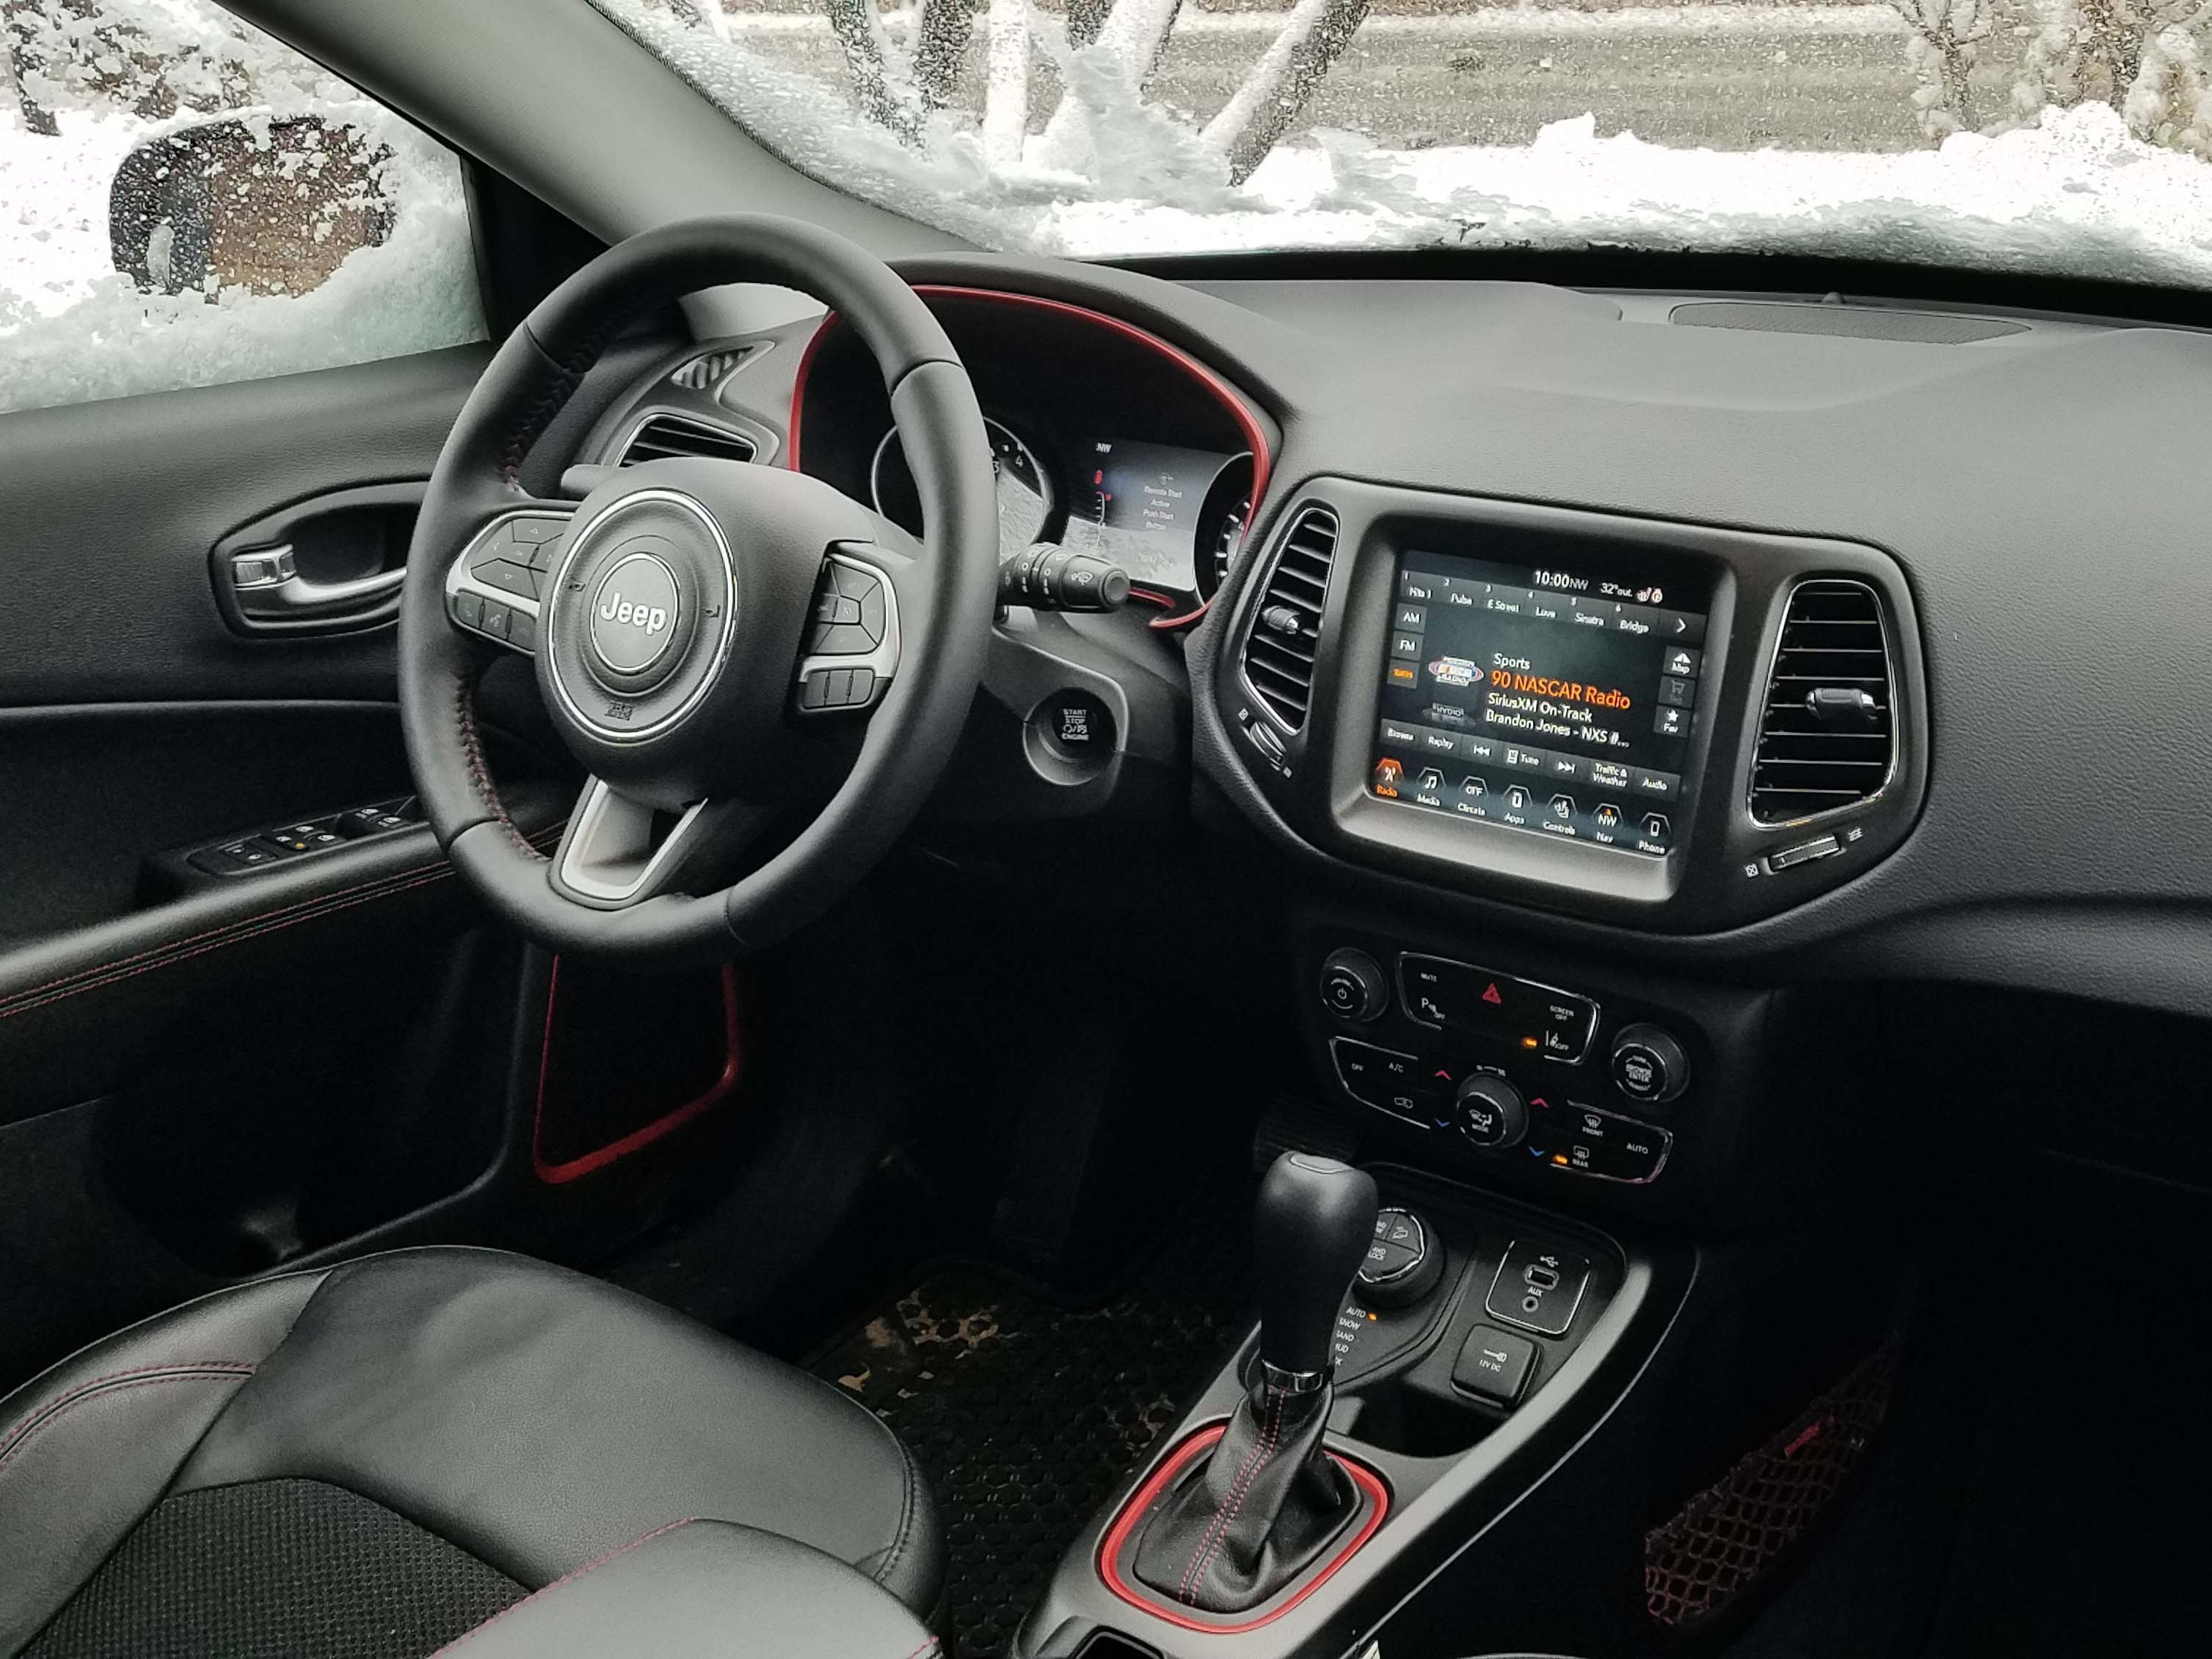 The Jeep Compass Trailhawk comes with a typically handsome FCA interior that includes smartphone app connectivity for navigation, UConnect infotainment and mode select. Console space could be better.